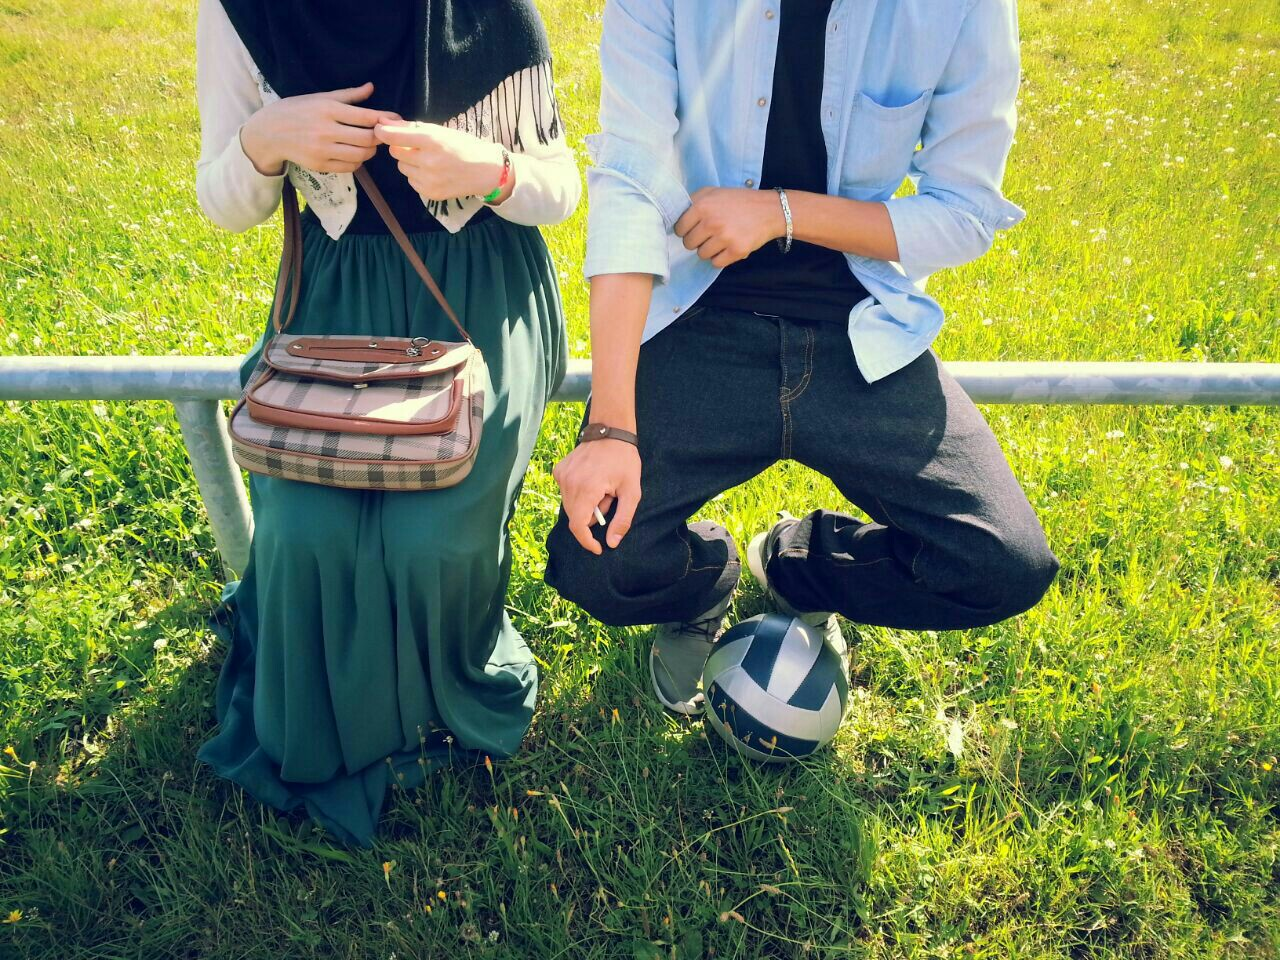 116 images about 😍 halal couples 💕 on we heart it see more about love hijab and muslim